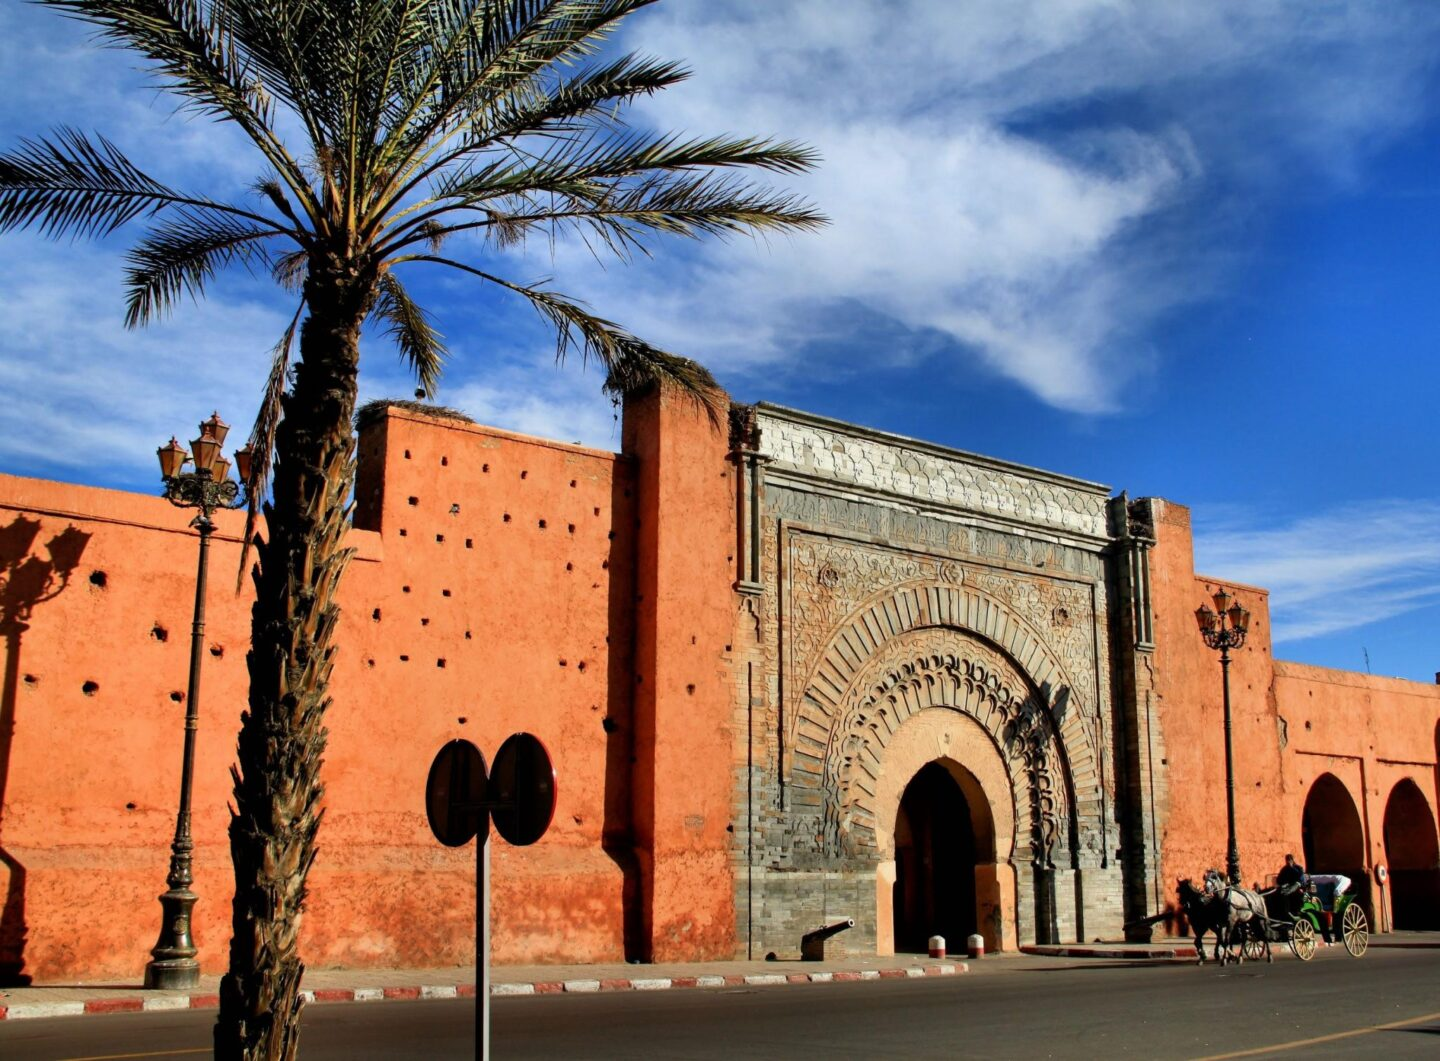 Morocco : The Top 4 Things To Do And See in Marrakech